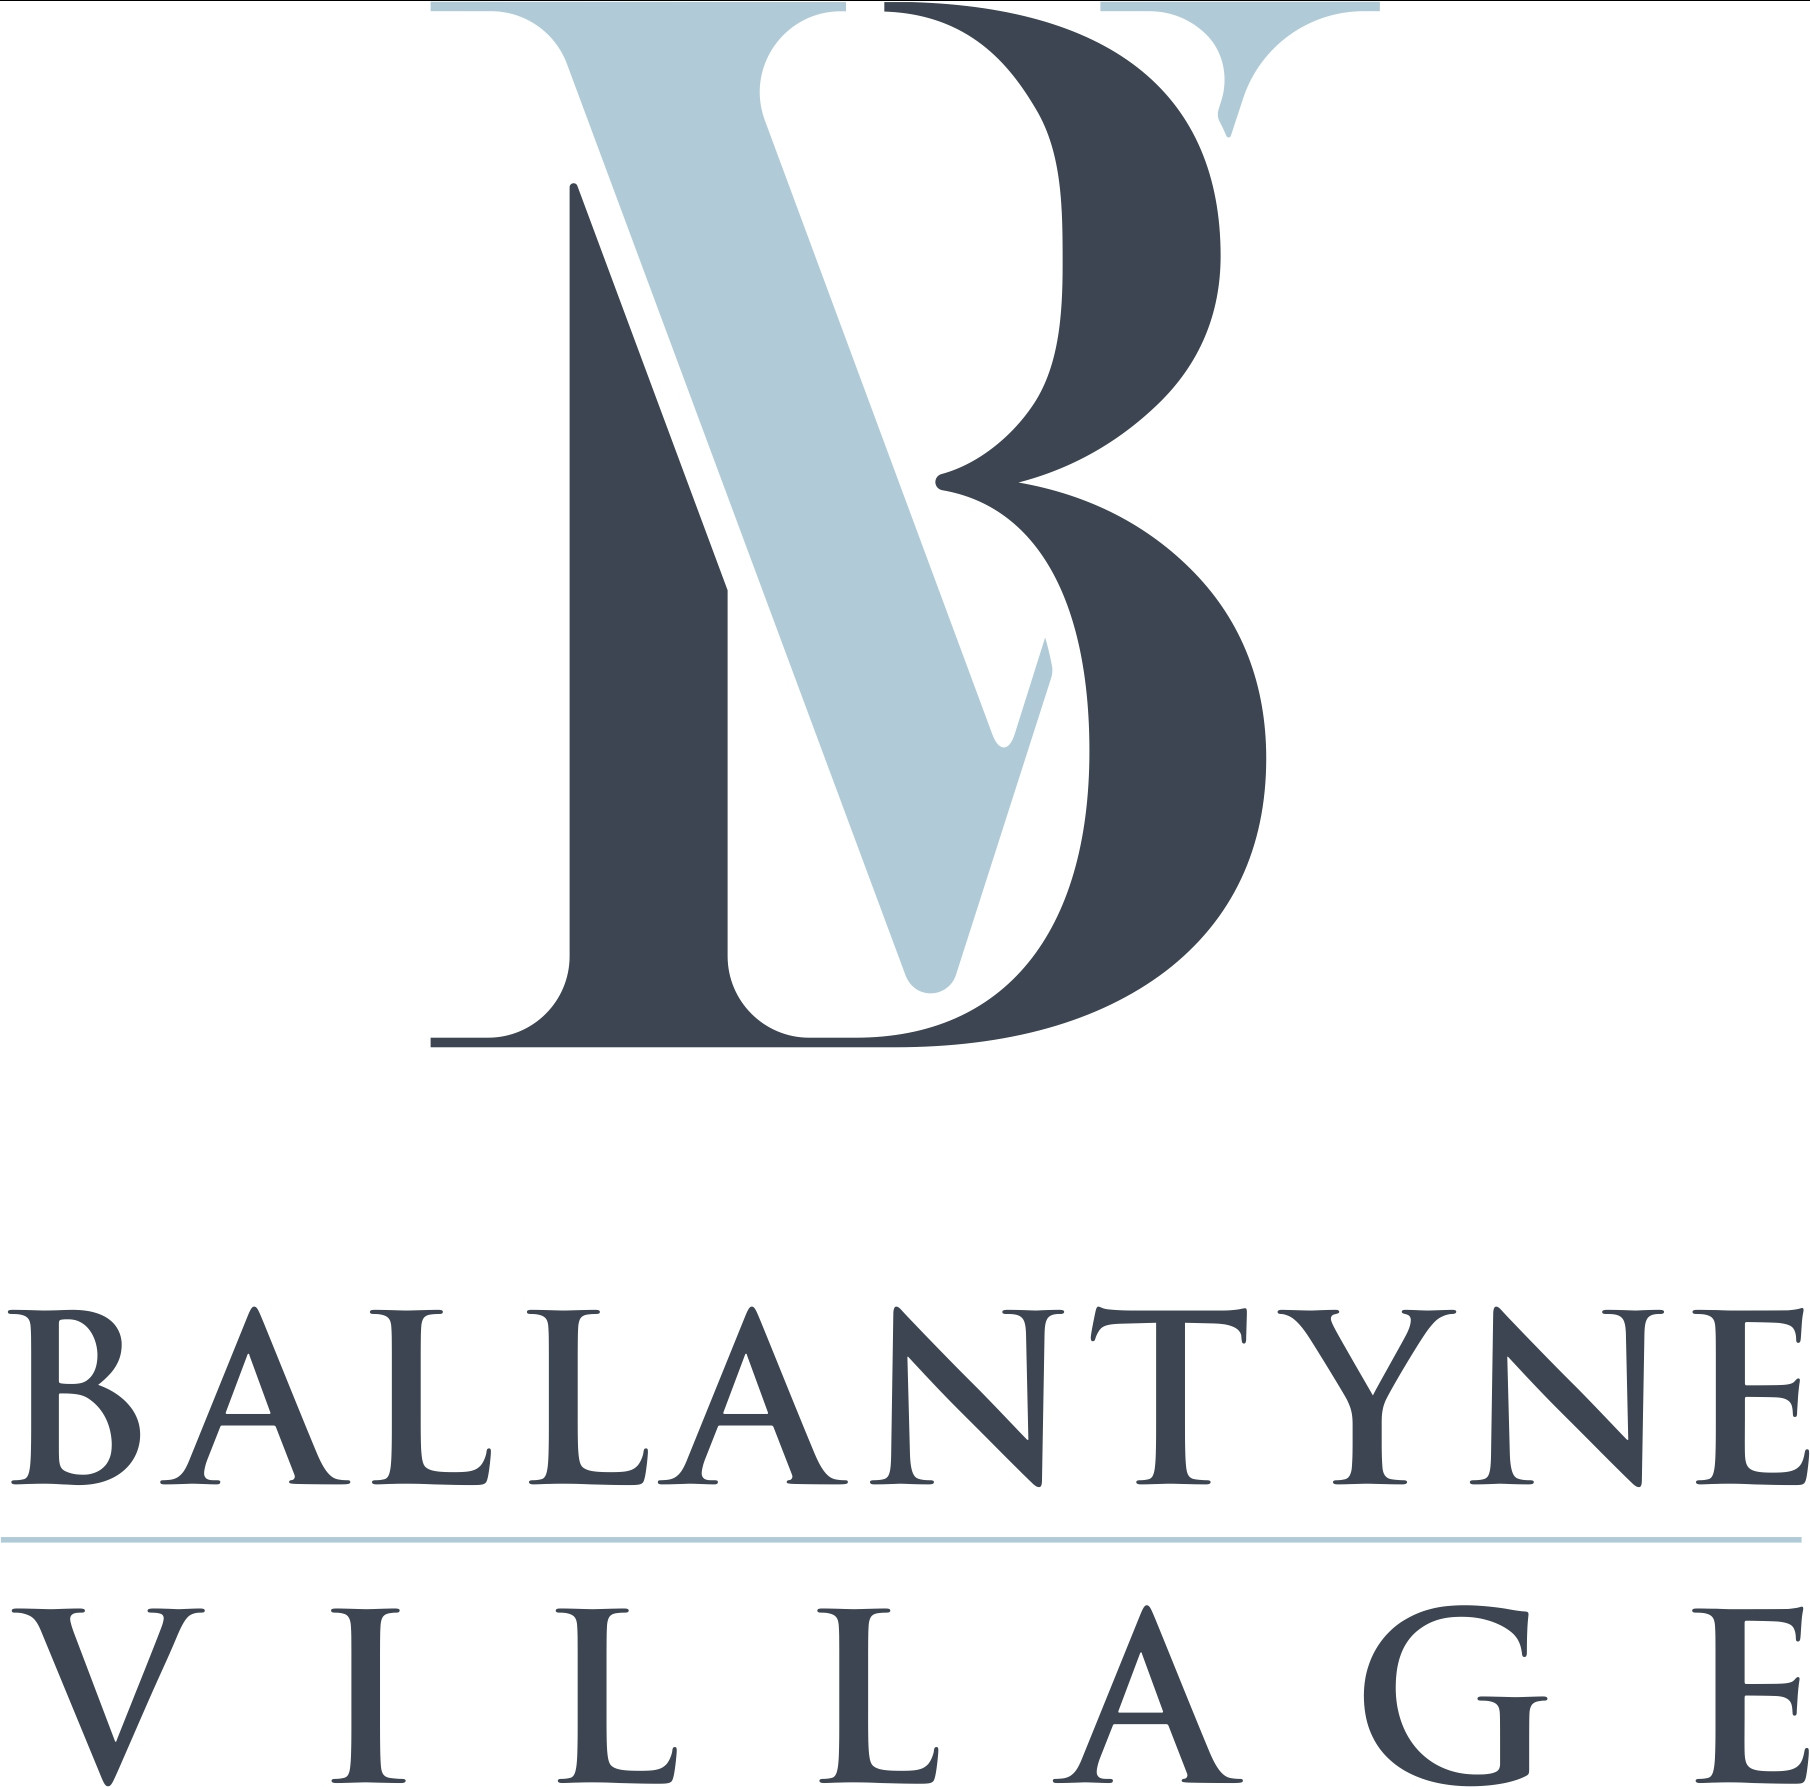 Ballantyne Village